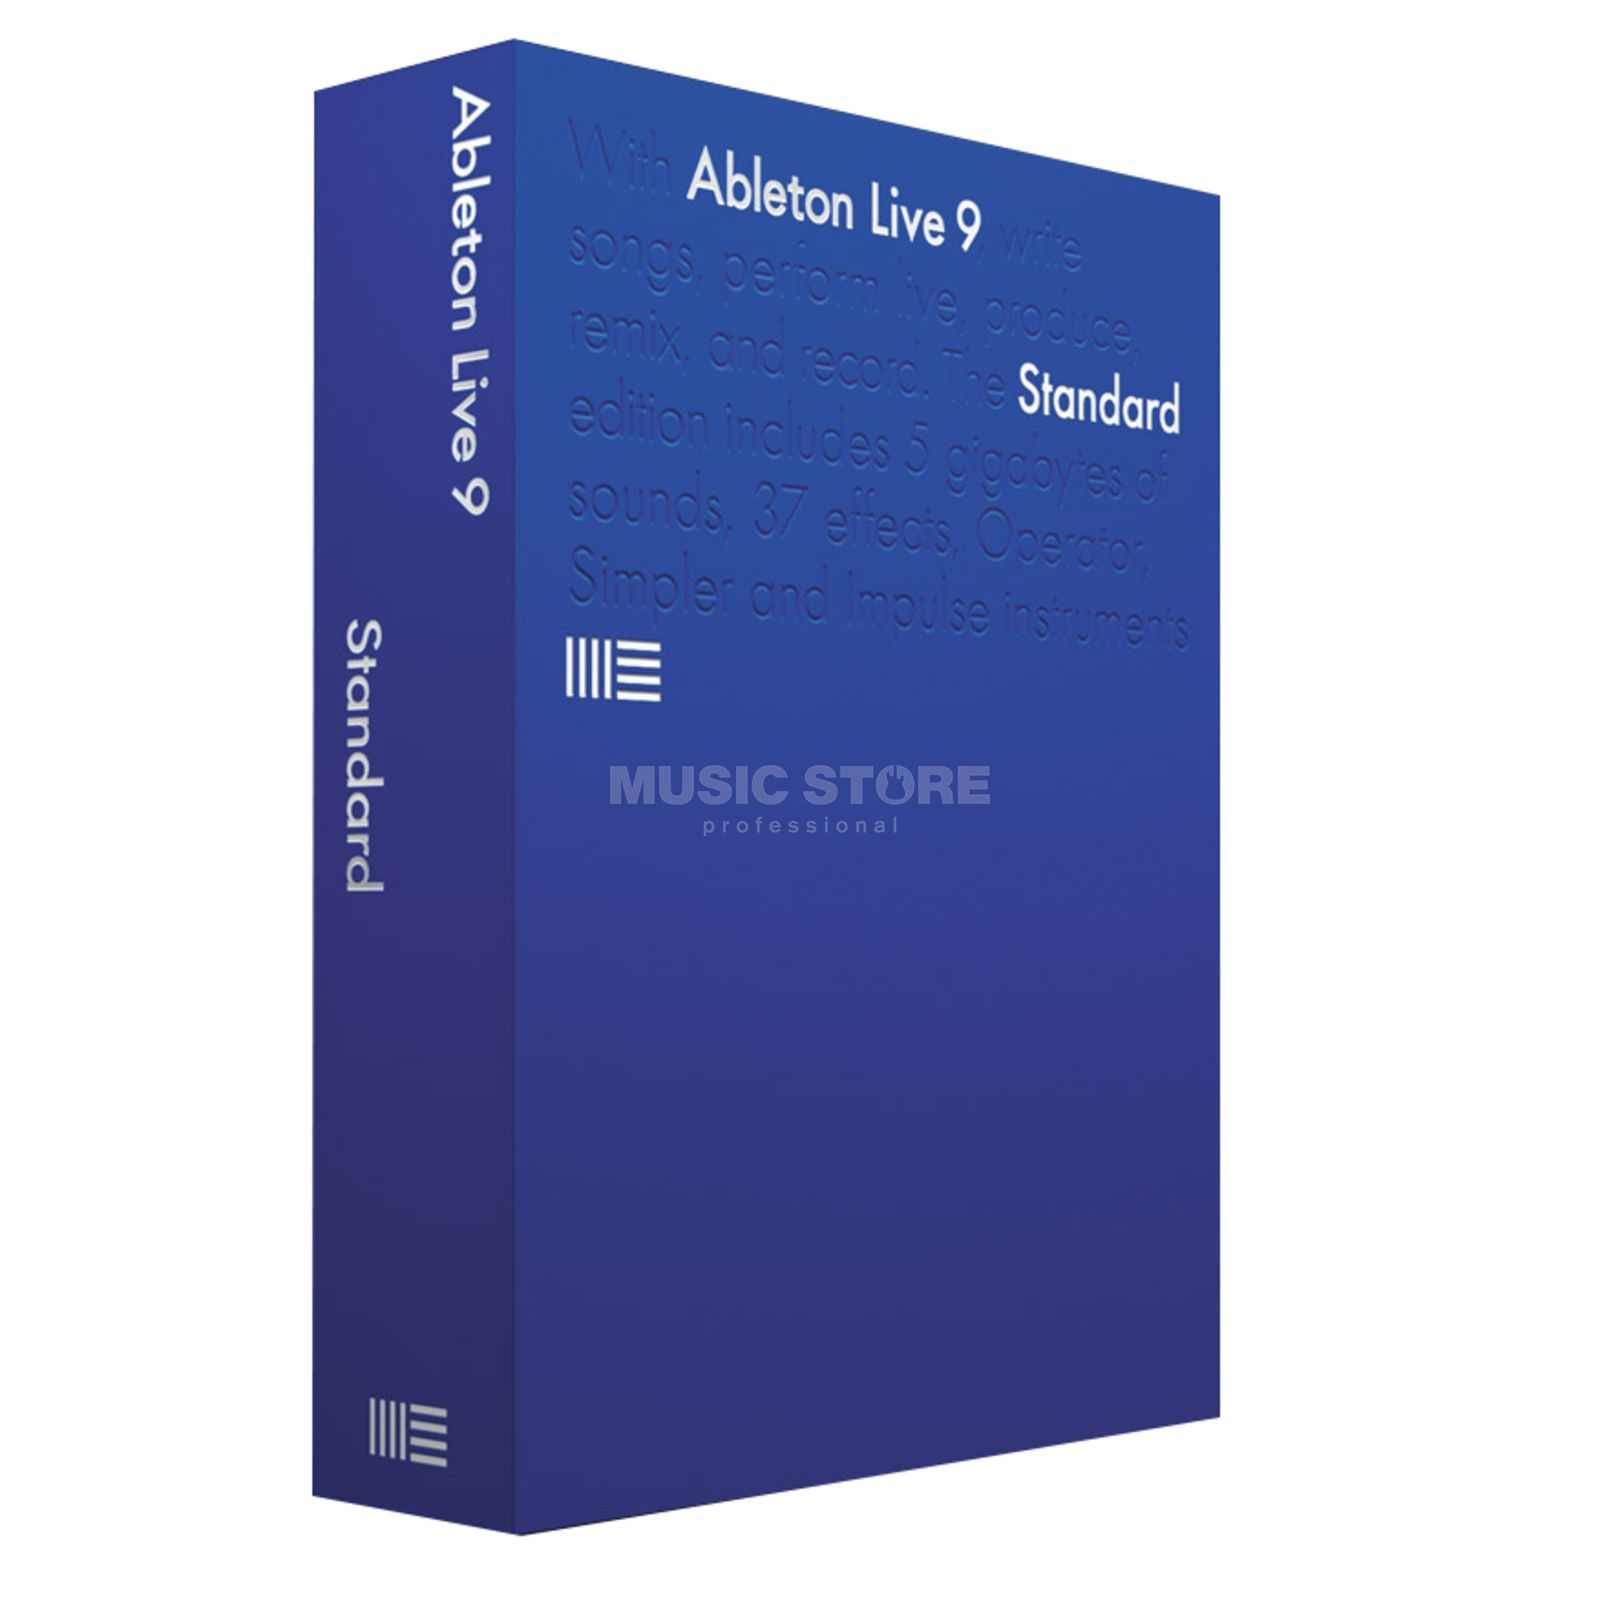 Ableton LIVE 9 Standard deutsch Boxed Version Produktbild